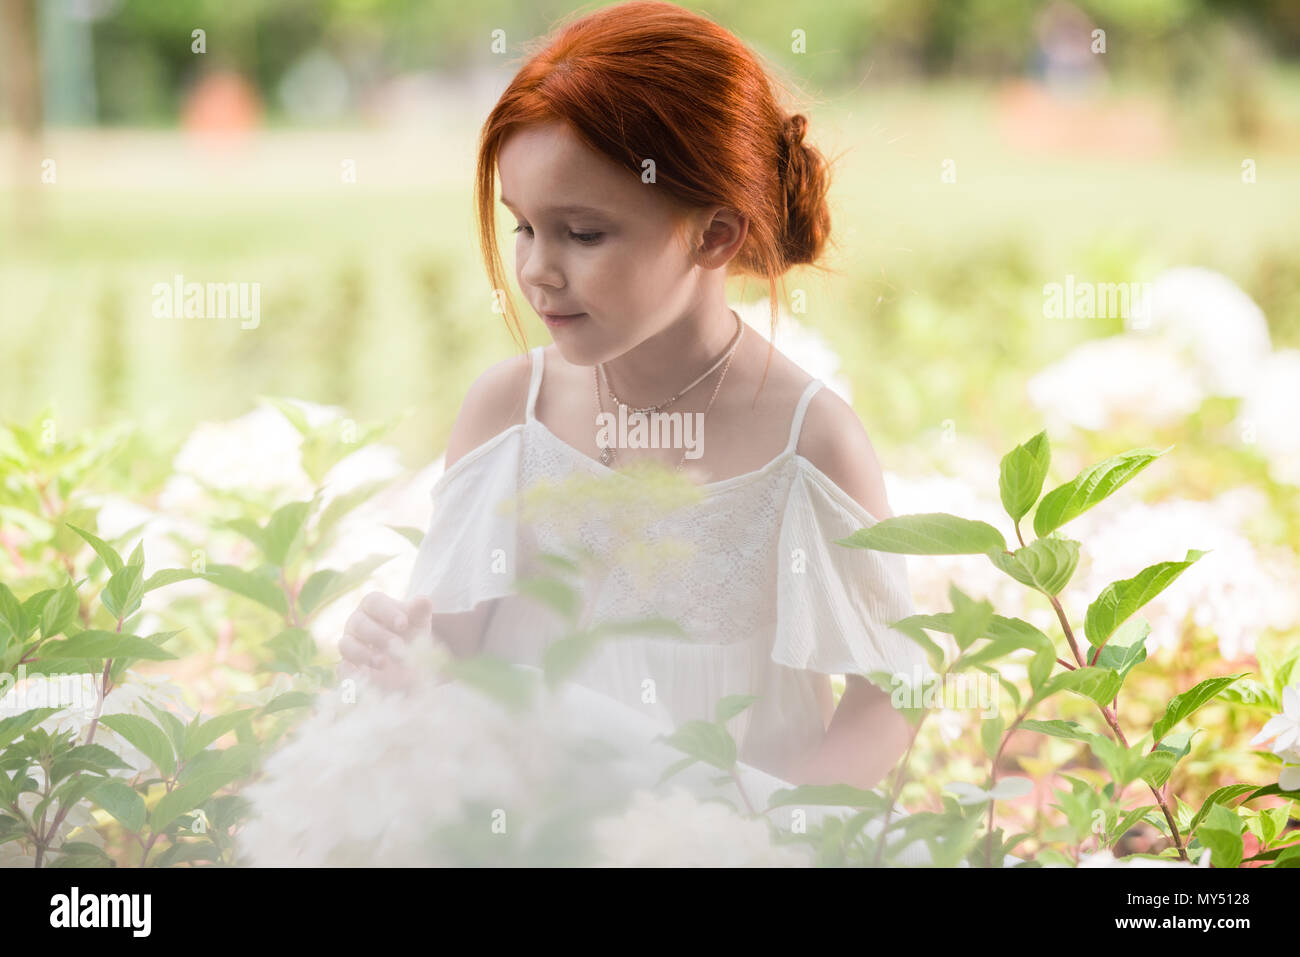 d8c79731bfa beautiful smiling red haired girl looking at white blooming flowers in  flower bed - Stock Image